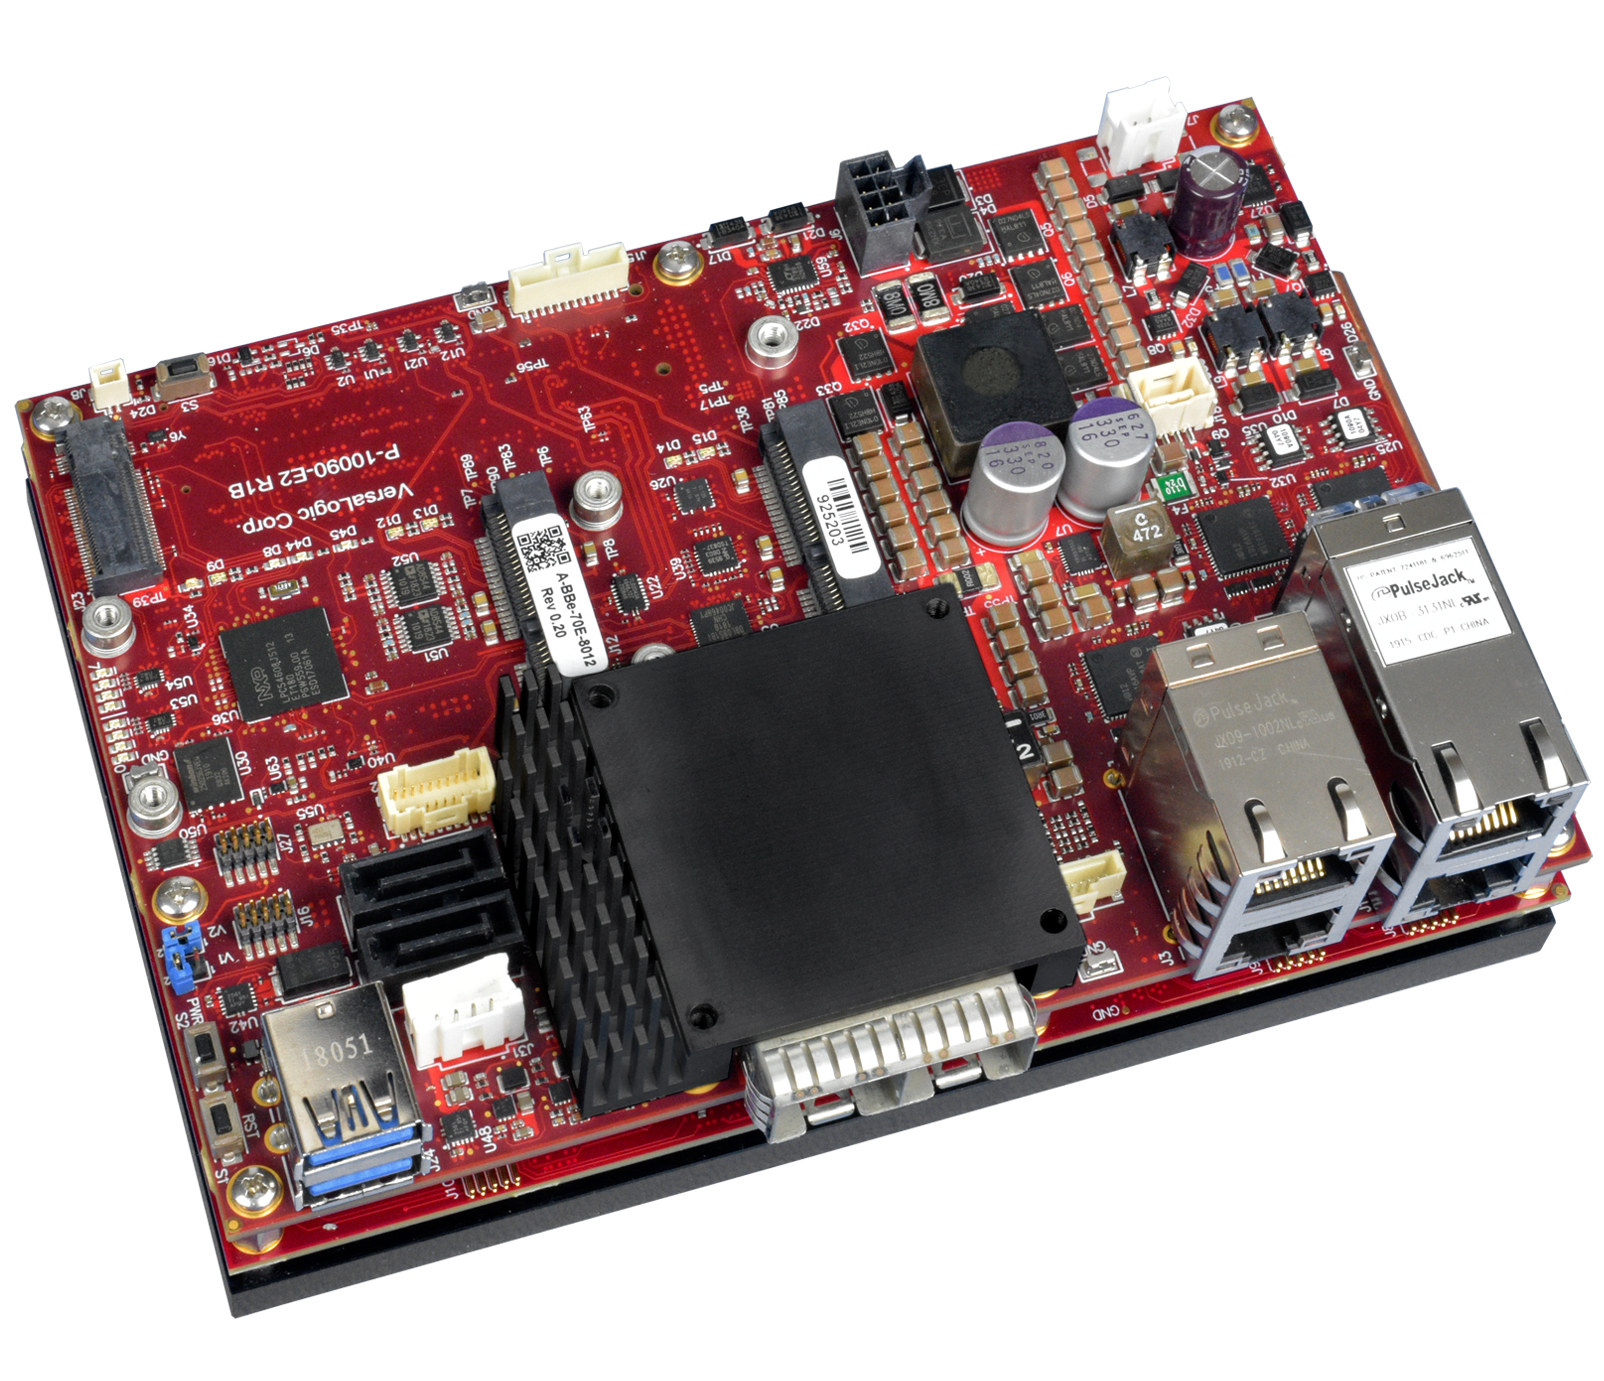 Versalogic Grizzly is an Embedded Server Board Powered by 16-Core Intel Atom